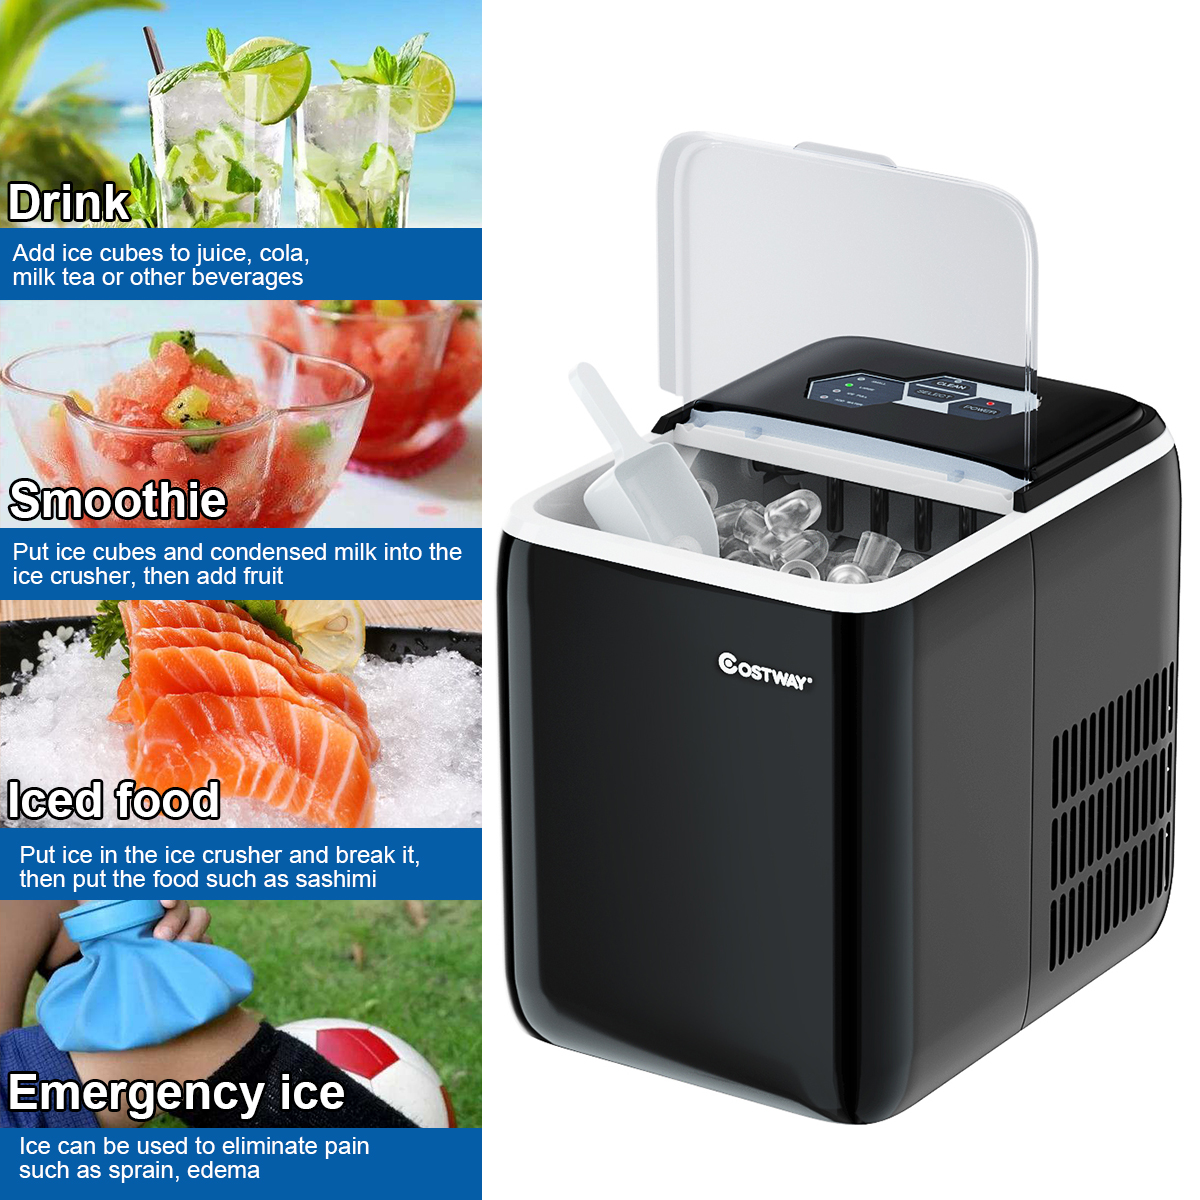 Party and Bar Bullet Ice Cubes Ready in 8 Mins Office Green 26LBS//24H portable Ice Machine with Self-cleaning Function COSTWAY Ice Maker for Countertop Scoop and Removable Basket for Home